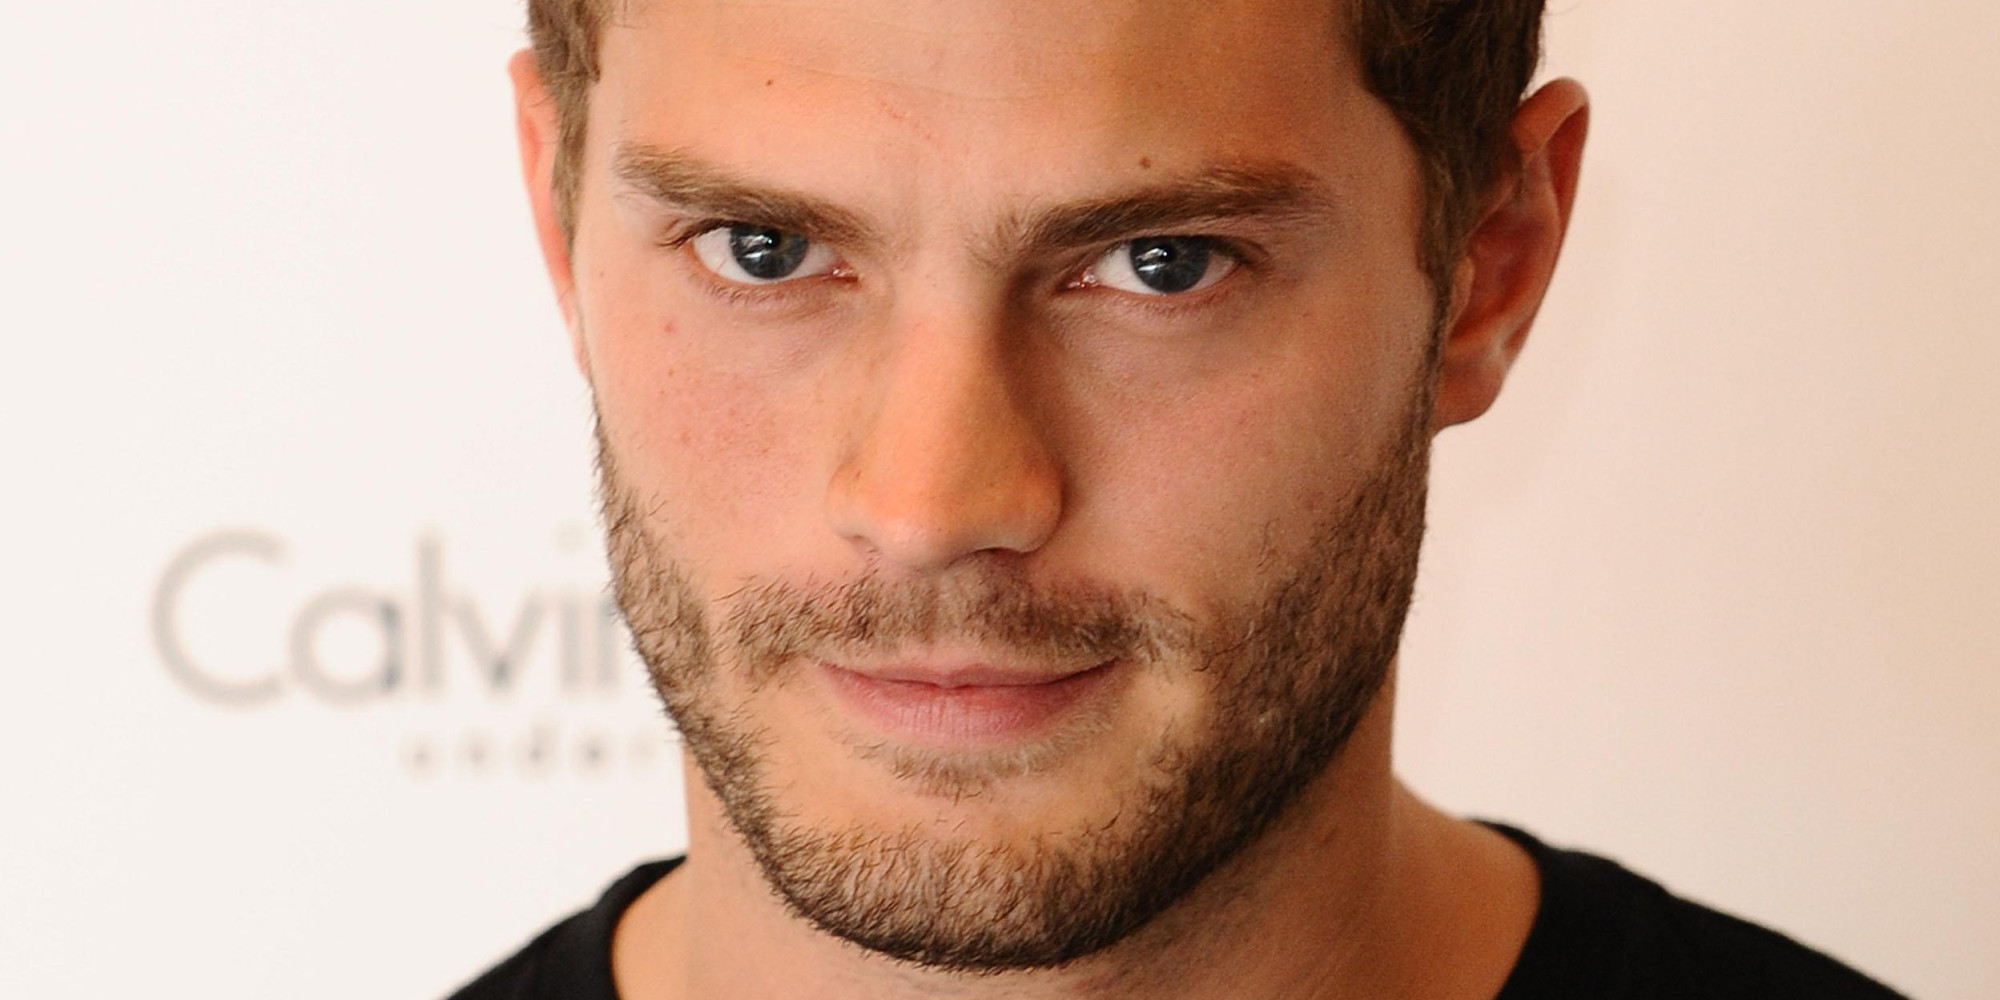 https://nicolasramospintado.files.wordpress.com/2007/02/jamie-dornan-fifty-shades-of-grey-3.jpg